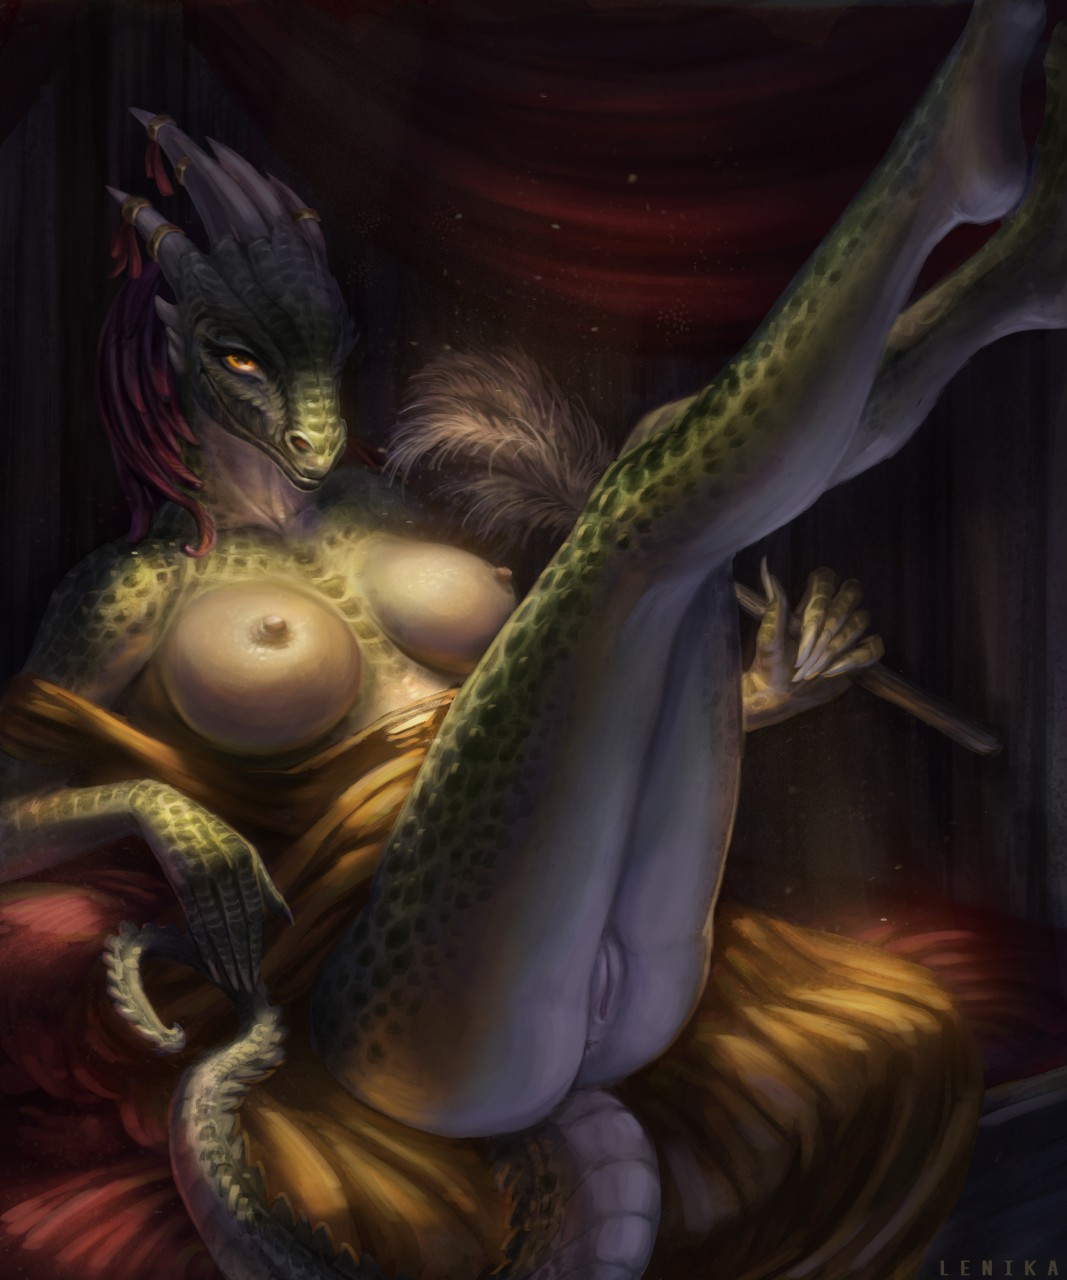 maid argonian lusty the cosplay So i cant play h uncensored